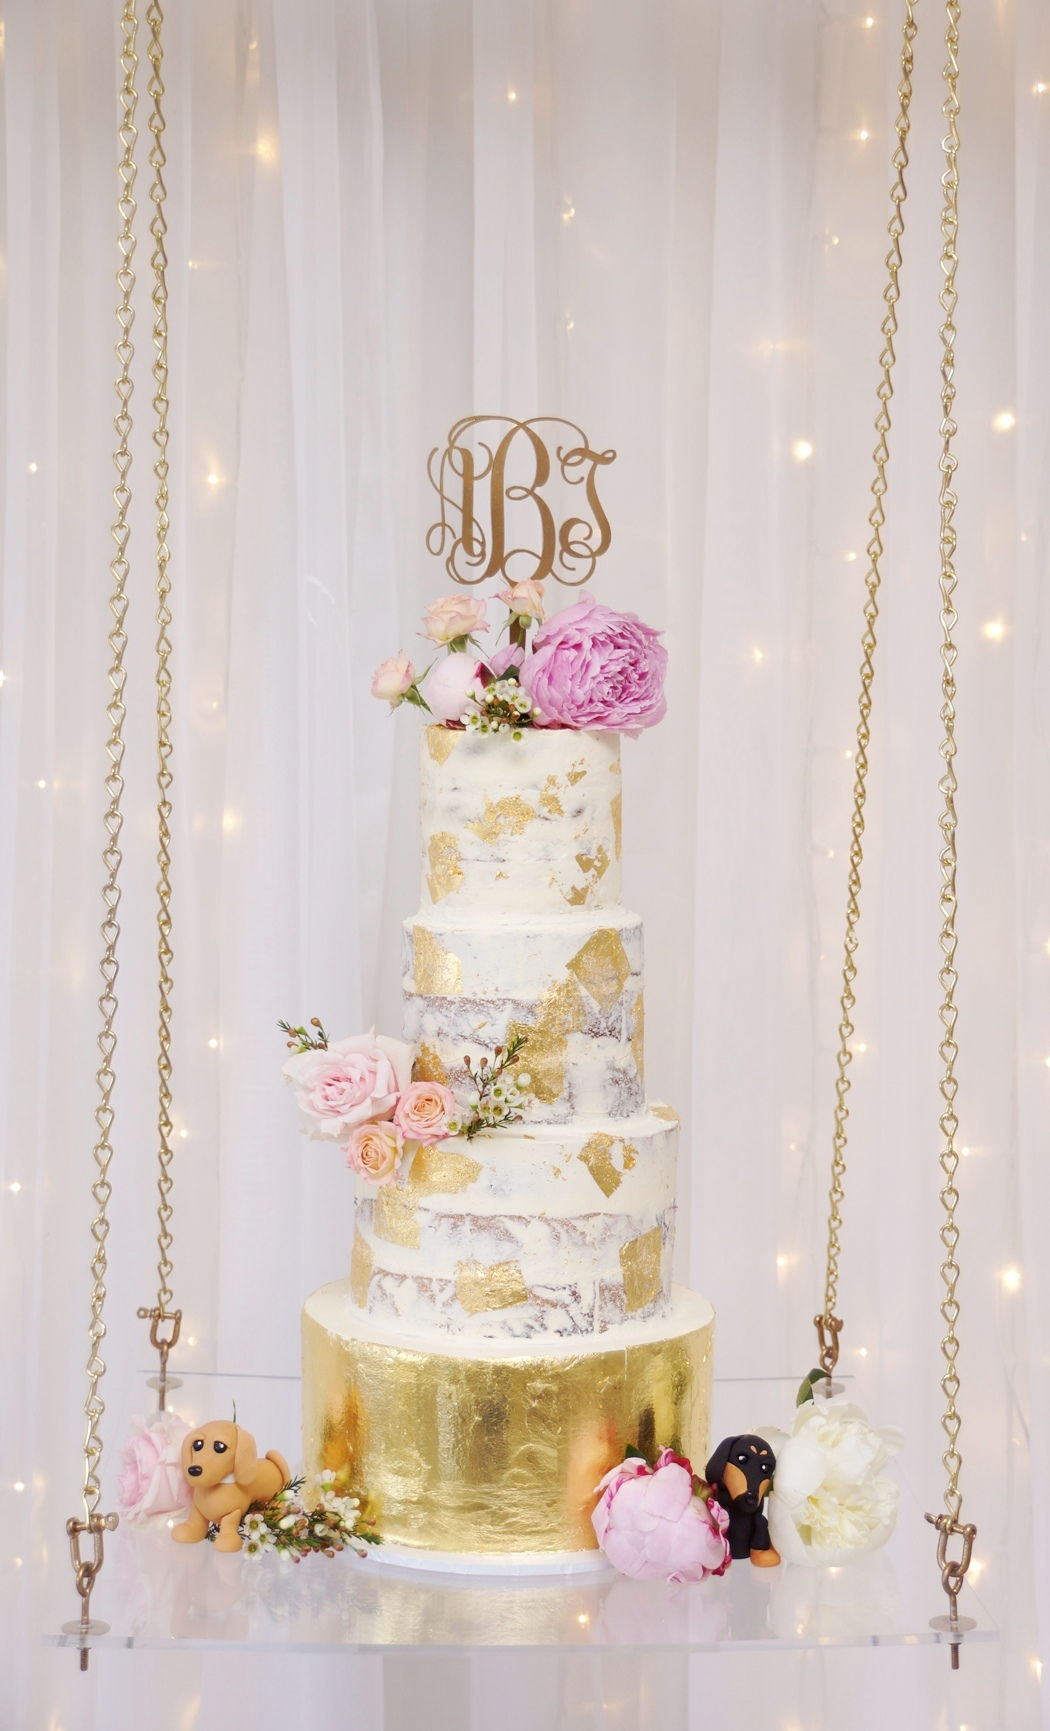 4 Tier buttercream with gold leaf 1